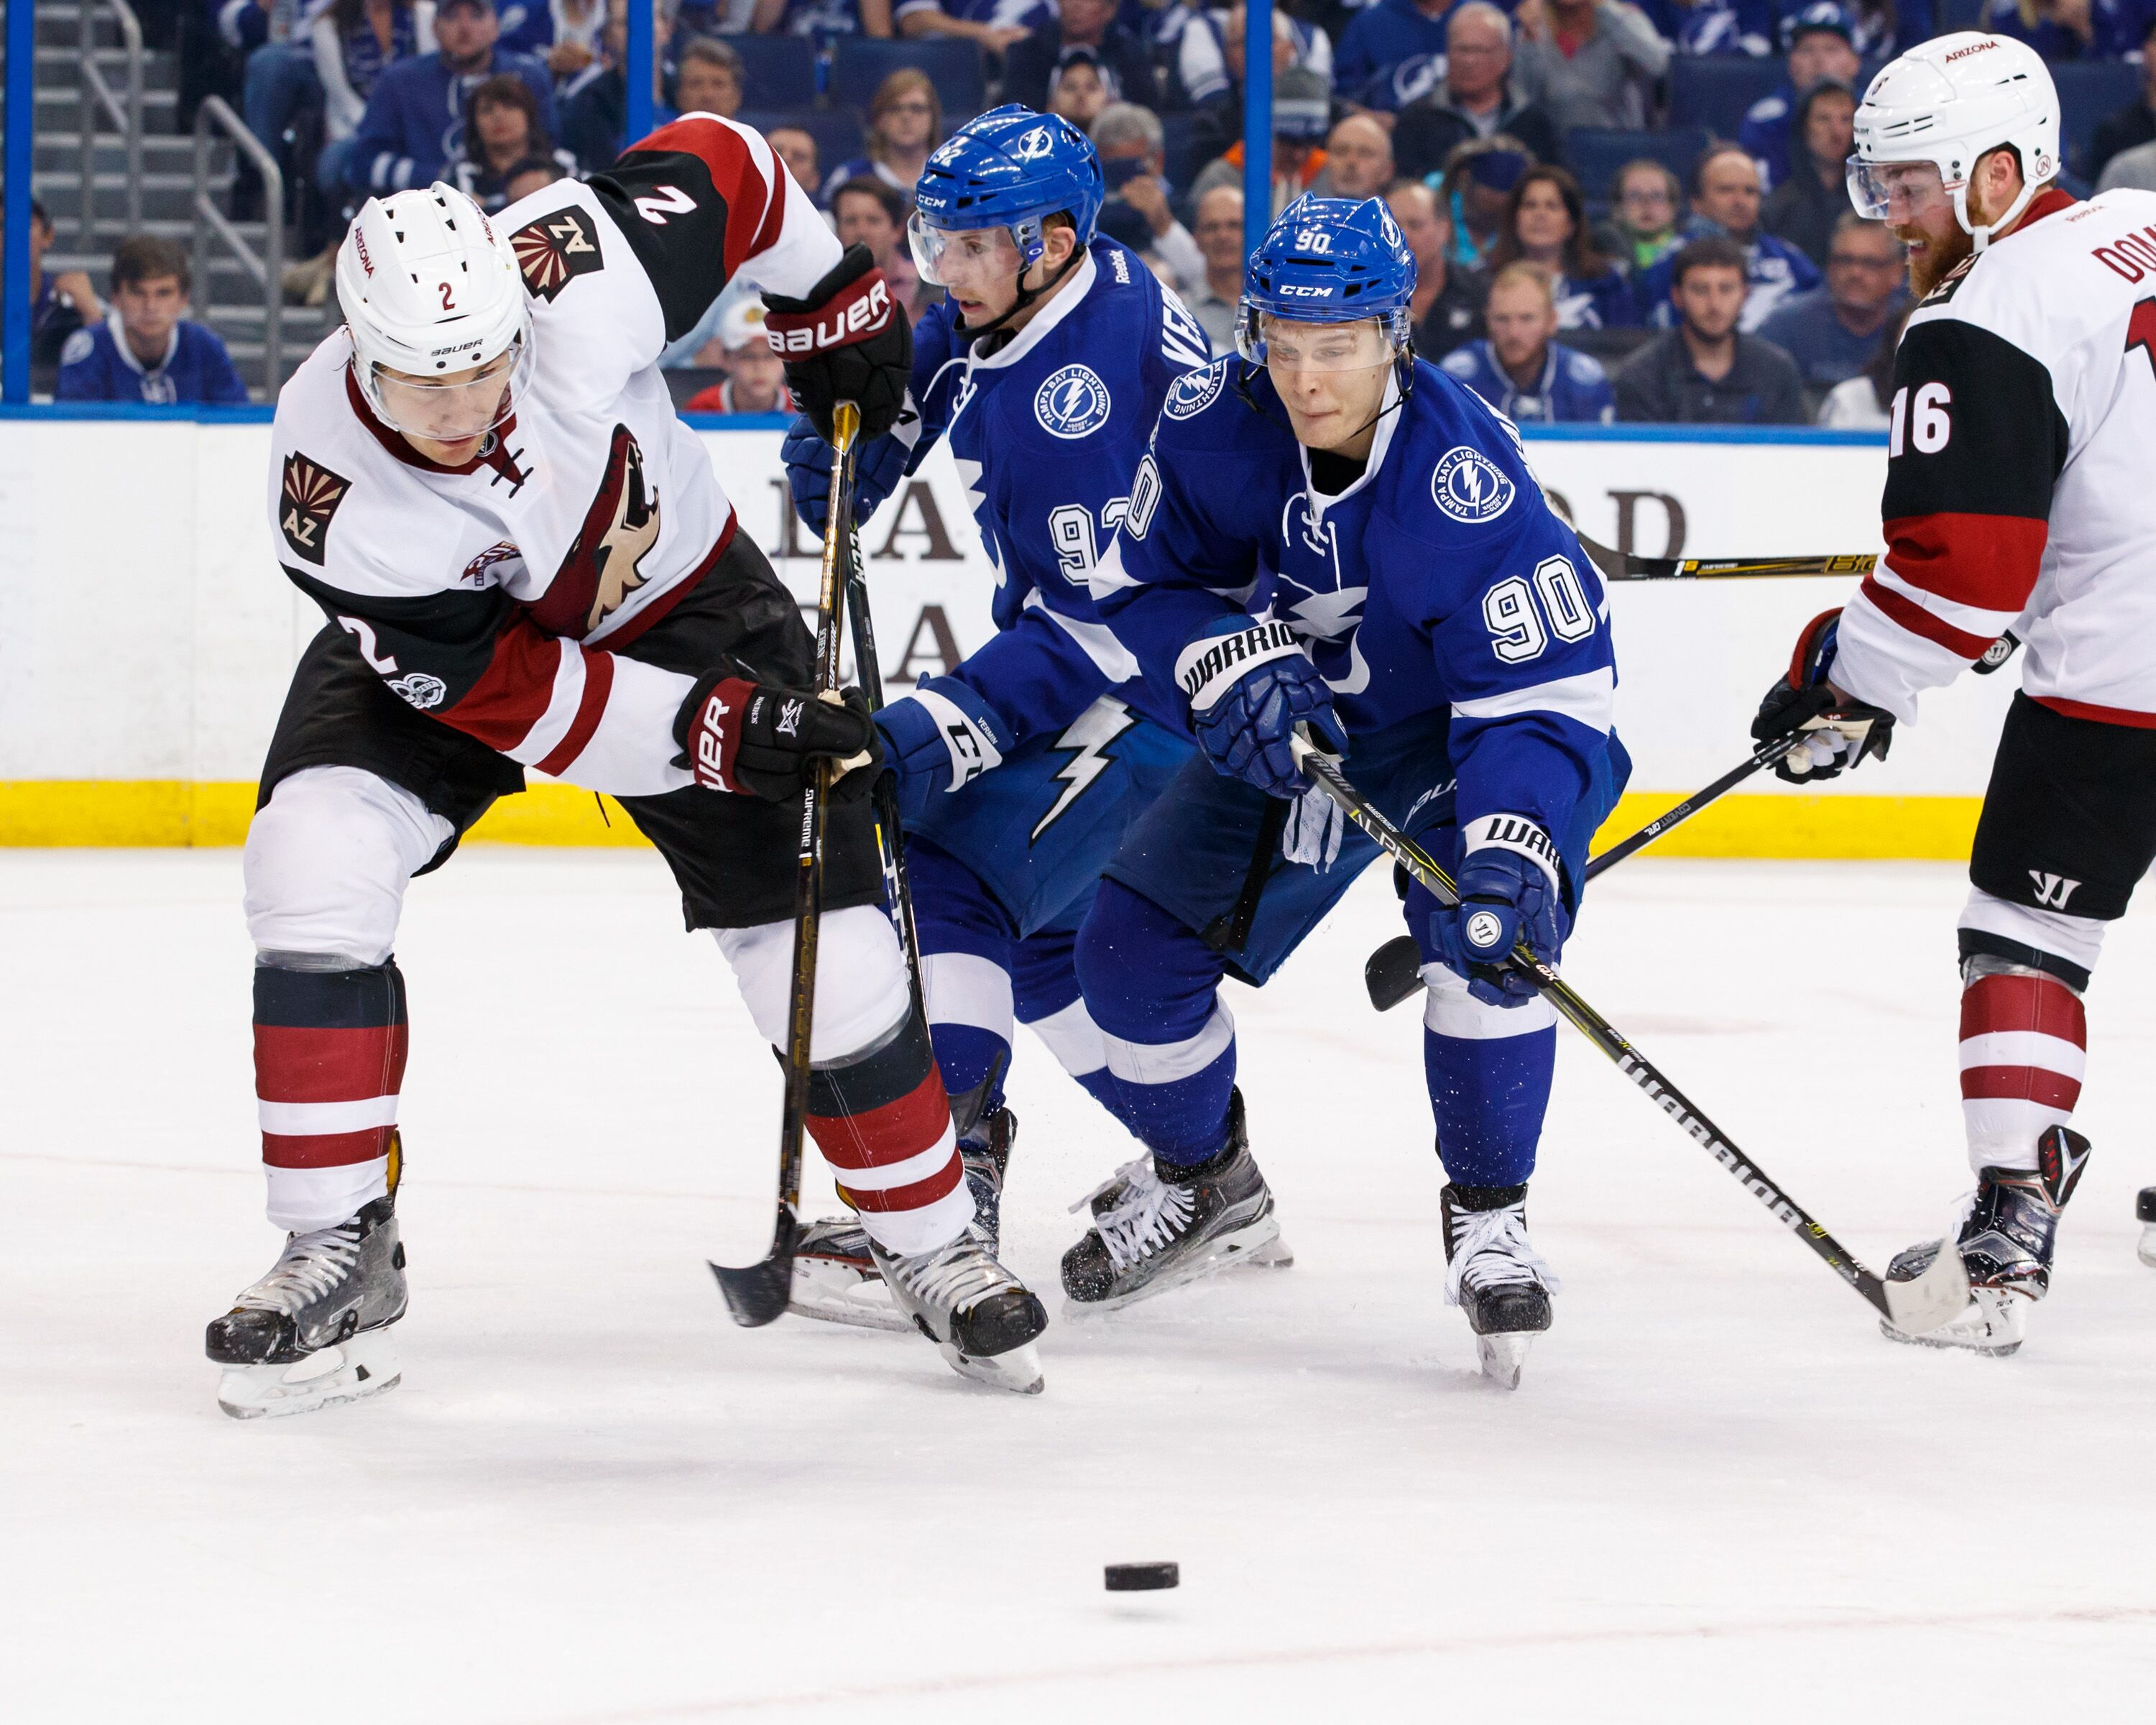 656273888-arizona-coyotes-v-tampa-bay-lightning.jpg